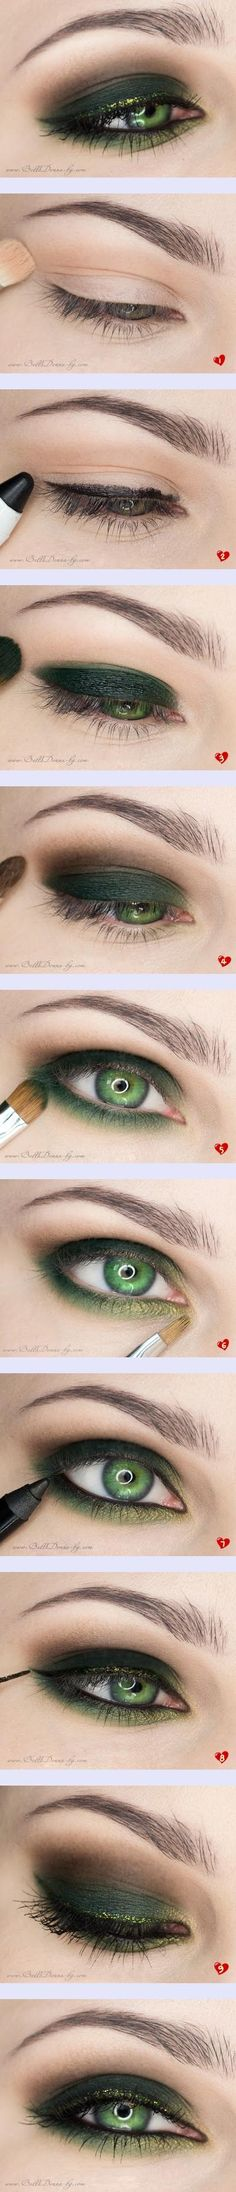 : 8 idées et tutos pour porter le vert Make up for green eyes - The place where you craft your beauty.Make up for green eyes - The place where you craft your beauty. Beauty Make-up, Beauty Hacks, Hair Beauty, Beauty Tips, Eye Makeup, Makeup Tips, Makeup Ideas, Makeup Contouring, Scary Makeup